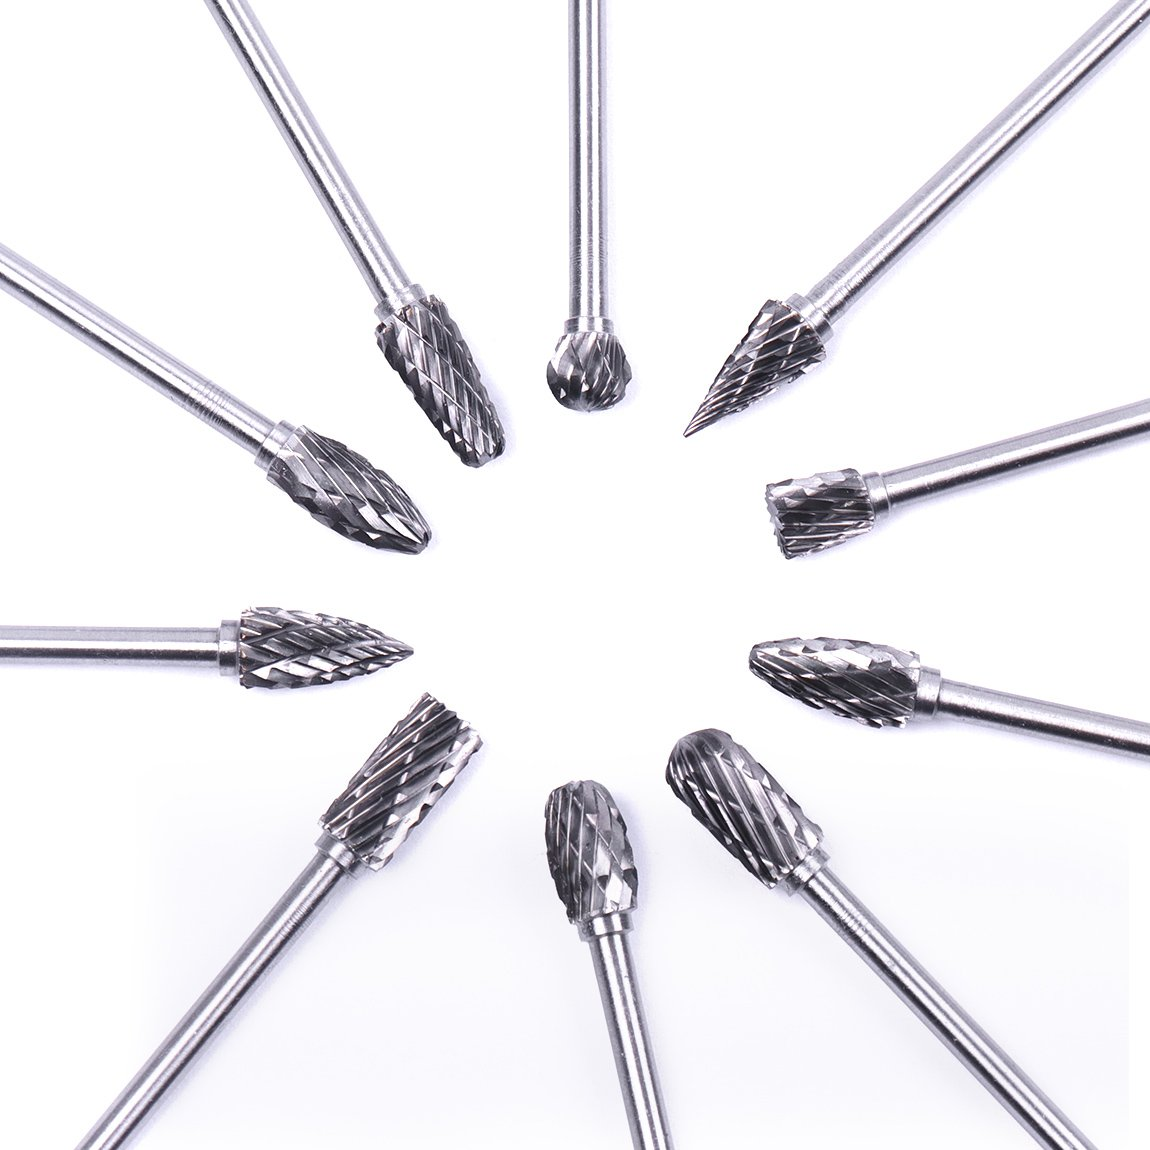 Atoplee 10pcs 1/8 Shank Tungsten Steel Solid Carbide Rotary Files Diamond Burrs Set Fits Rotary Tool for Woodworking Drilling Carving Engraving by ATOPLEE (Image #3)